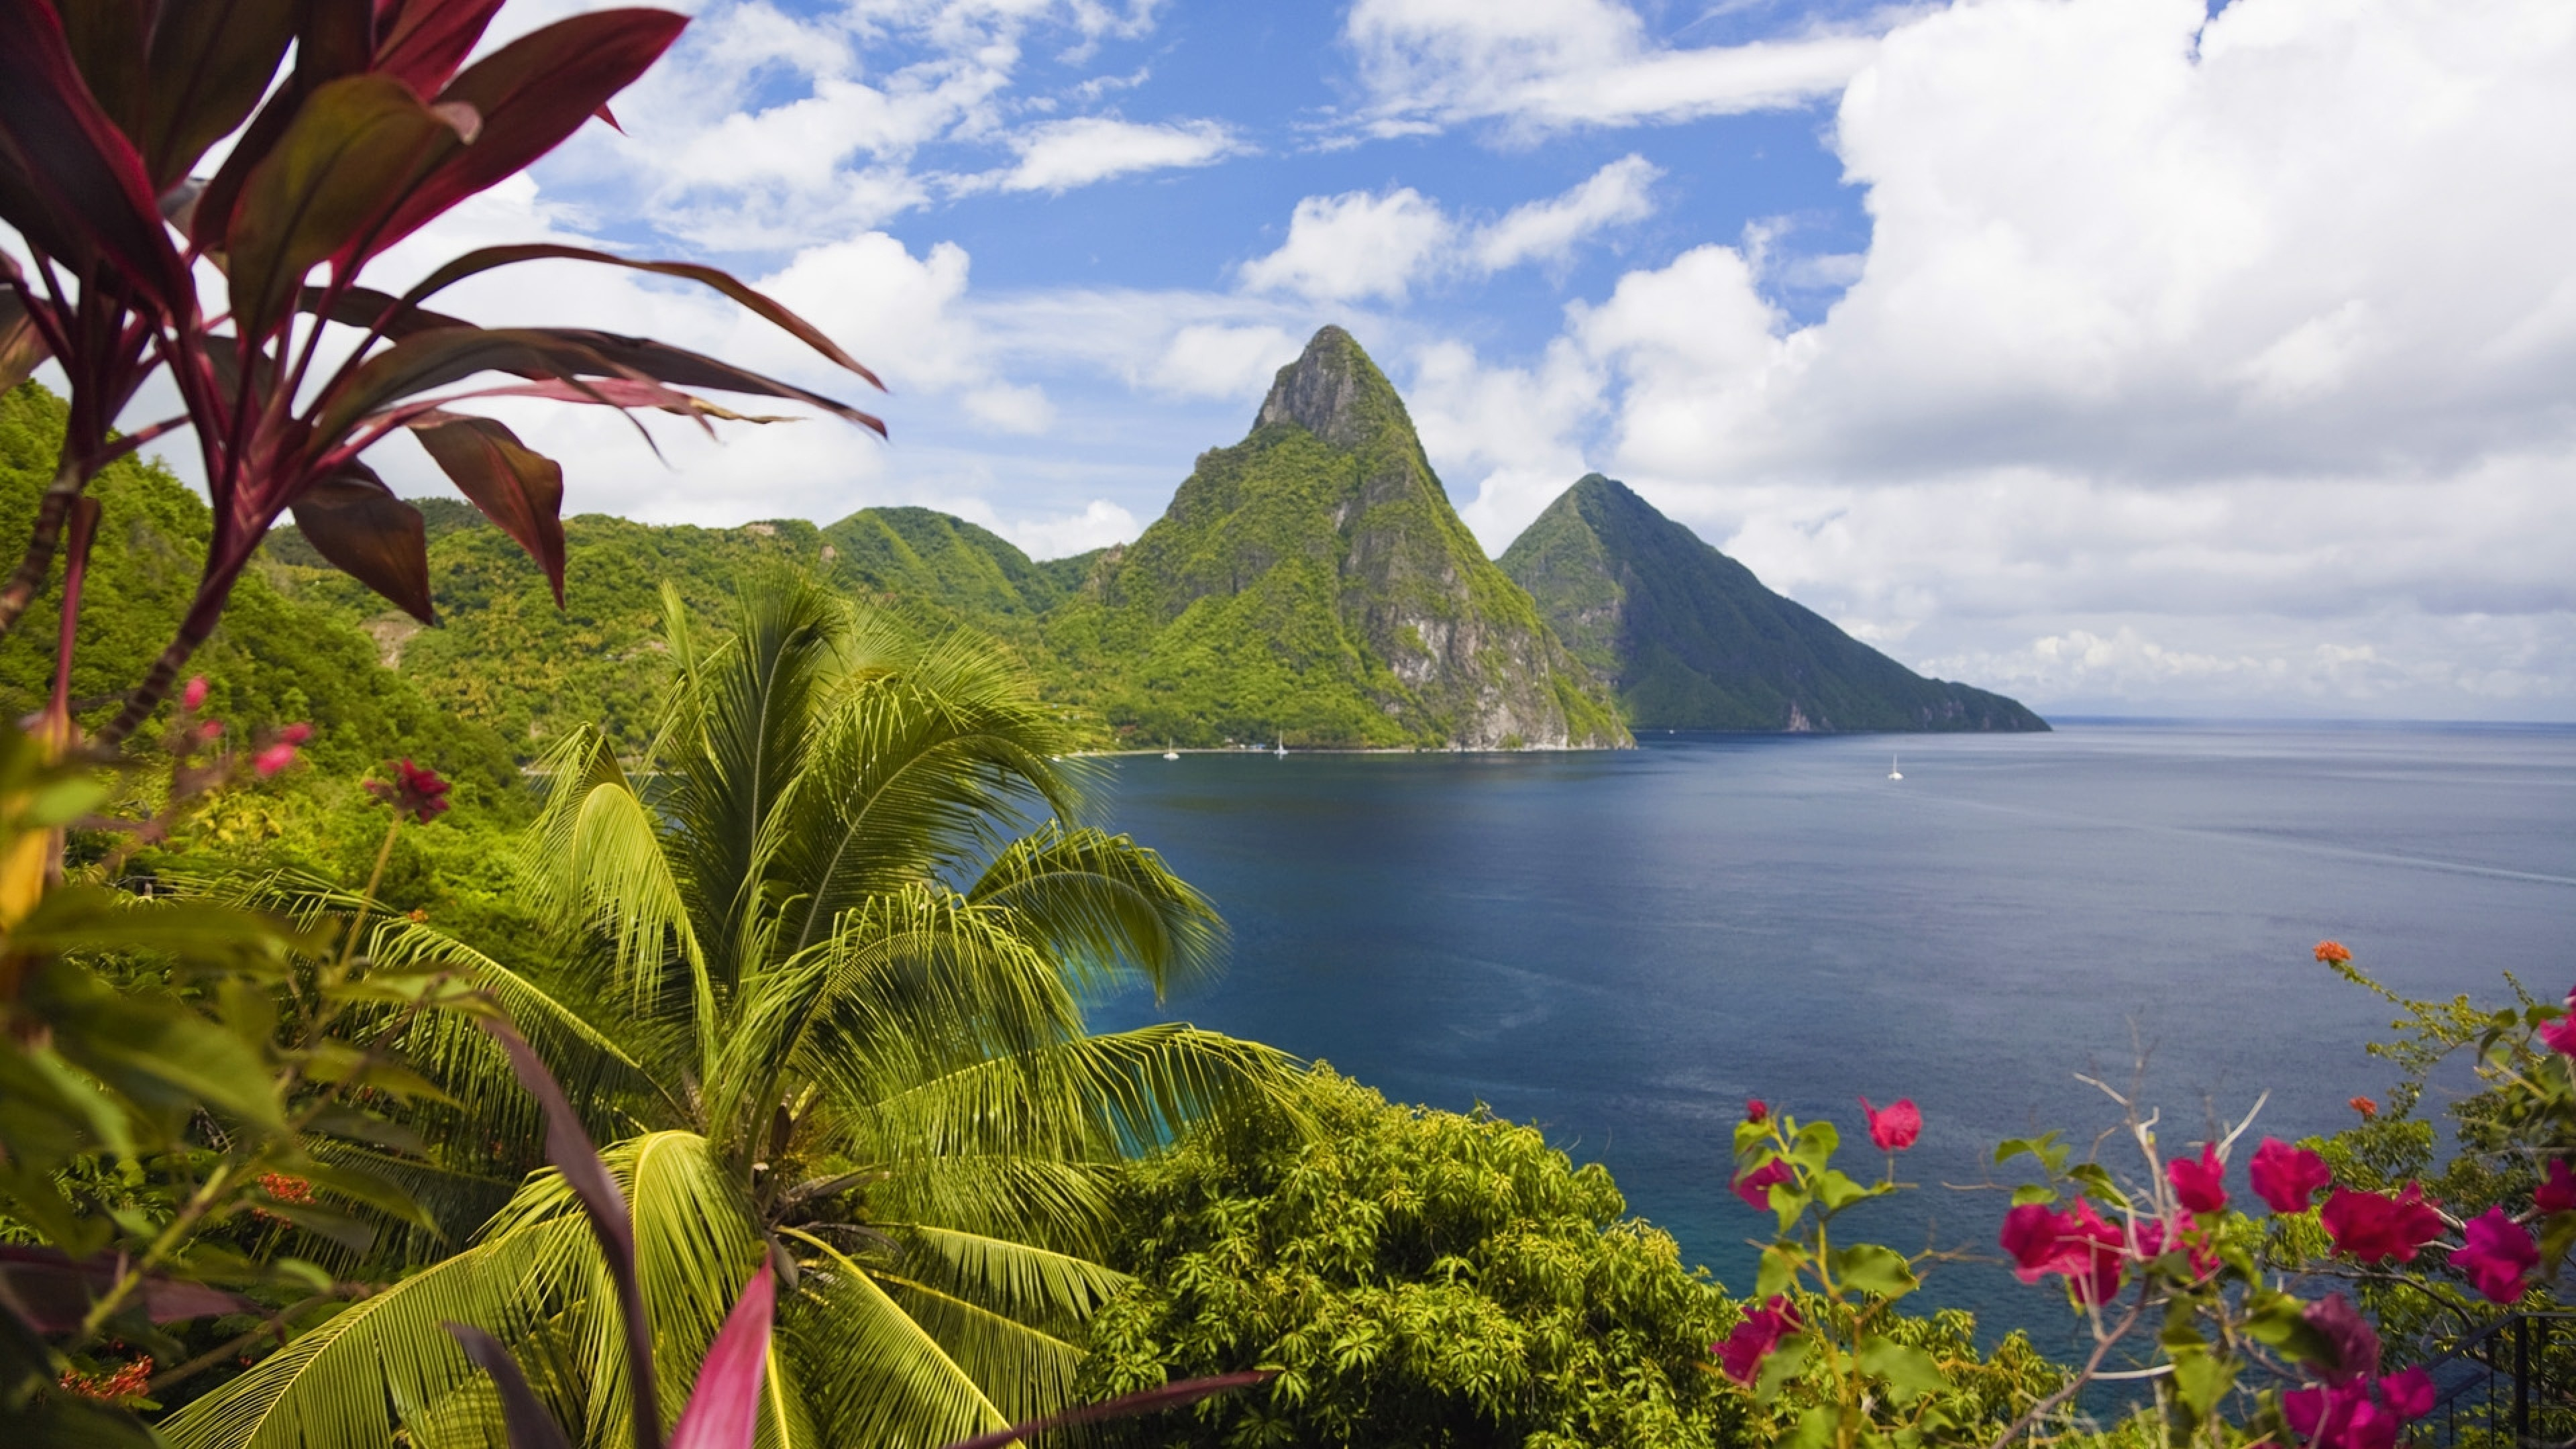 Preview wallpaper caribbean, ocean, palm trees, peaks 3840×2160